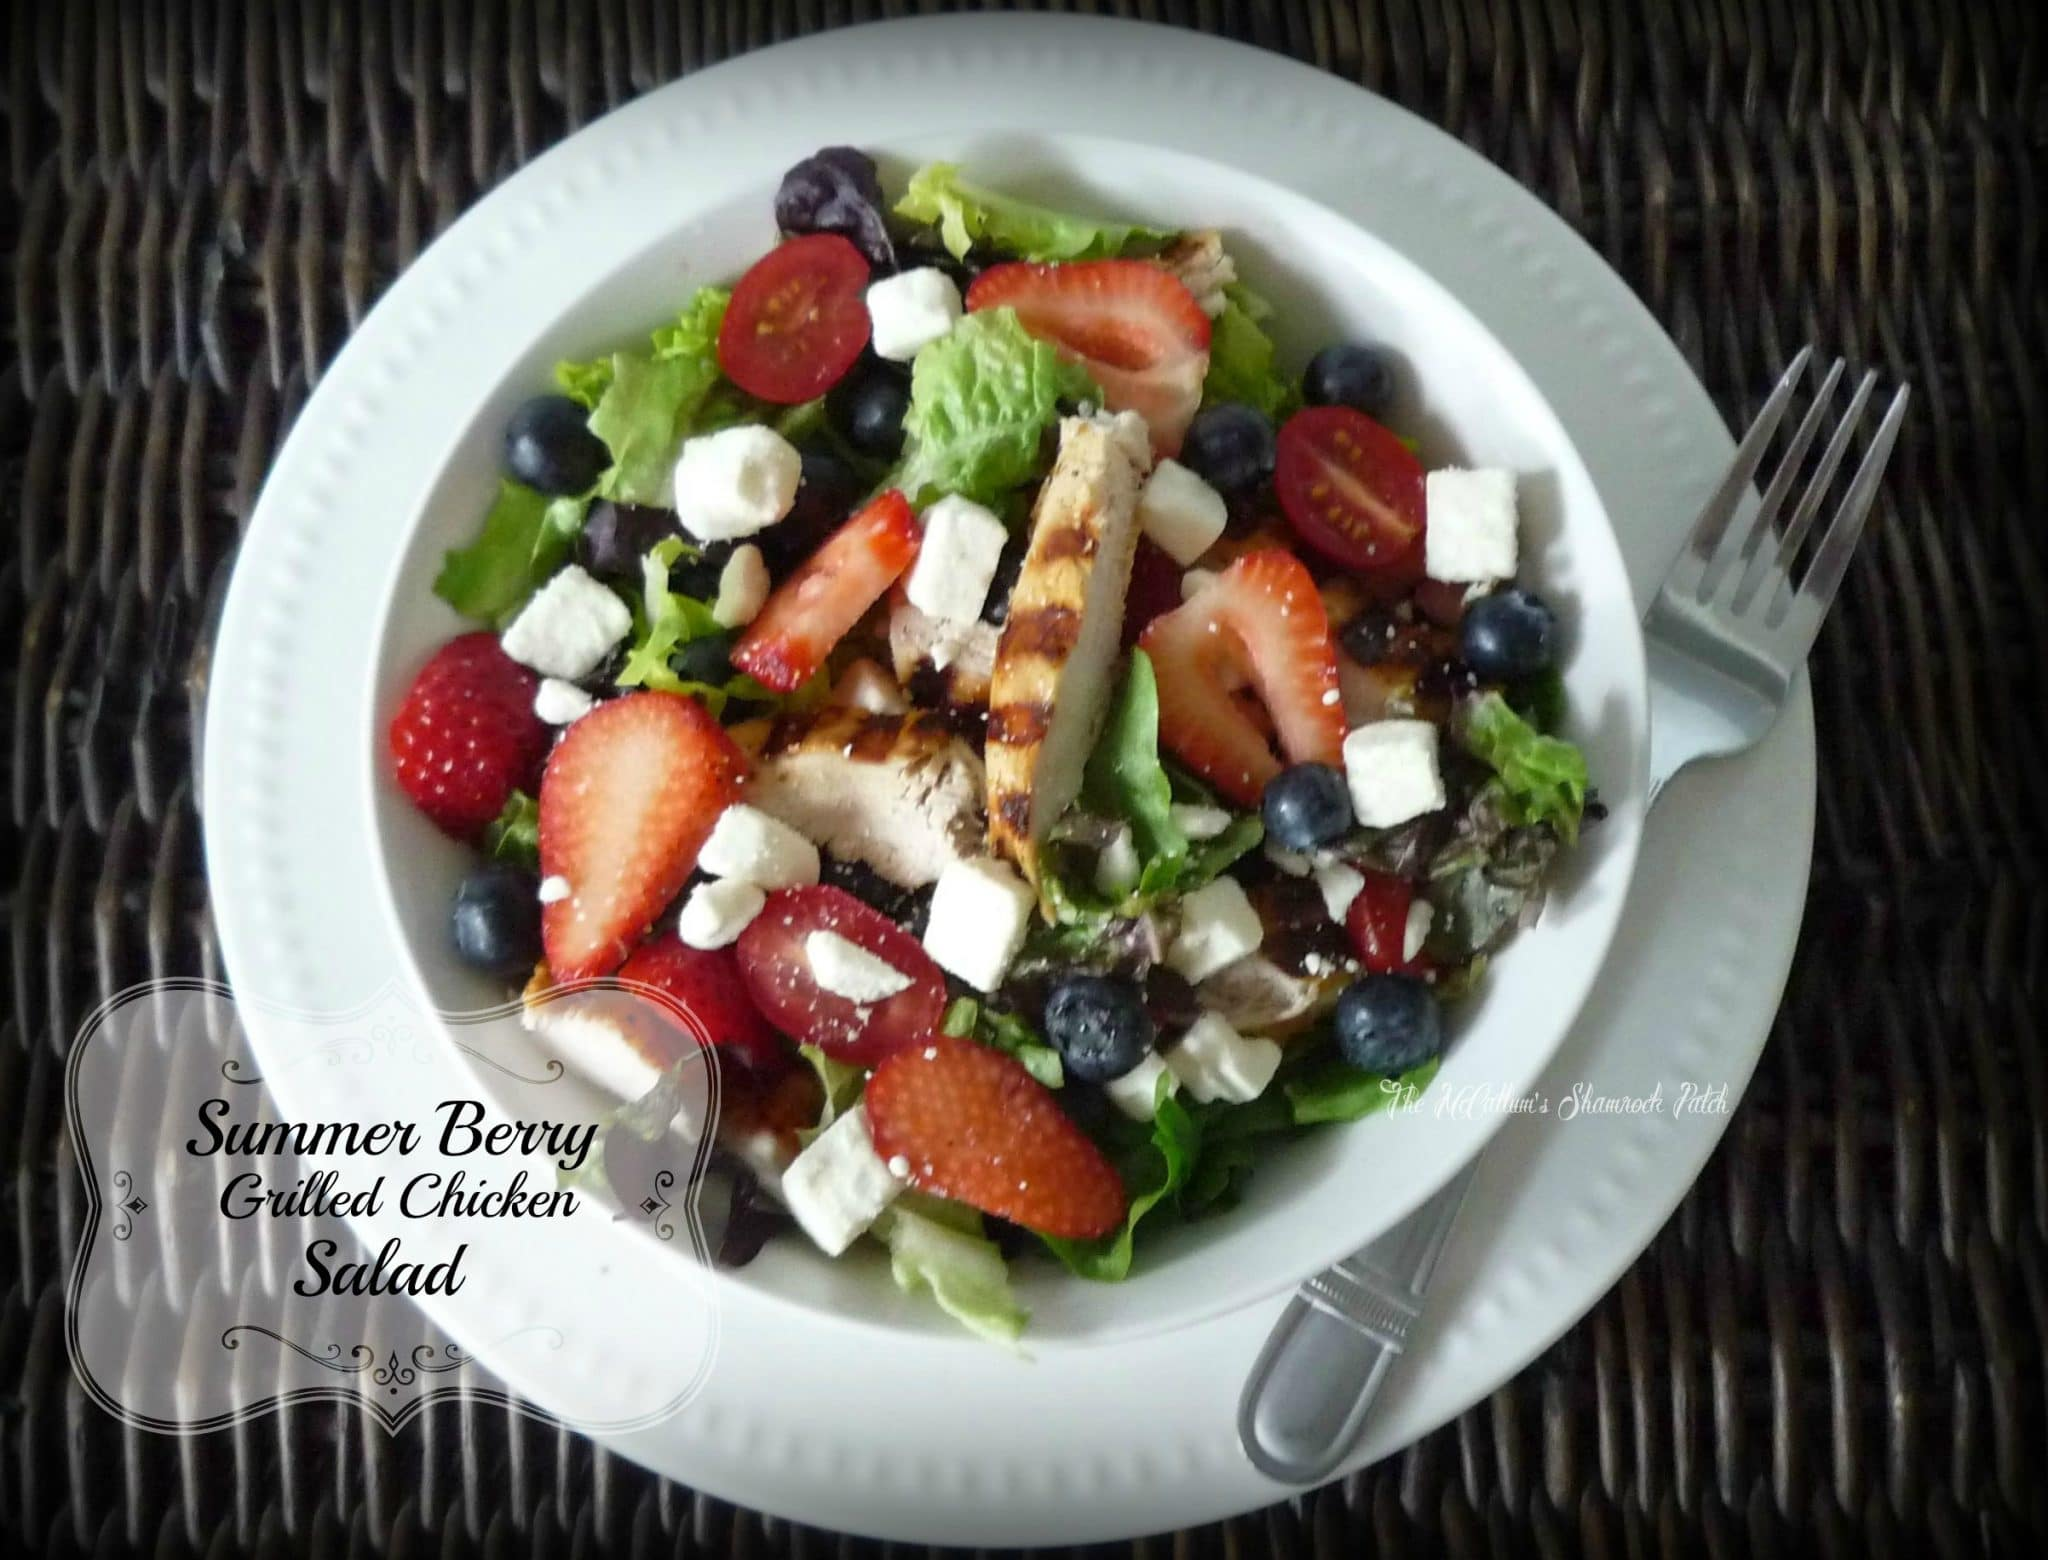 Summer Berry Salad with Grilled Chicken